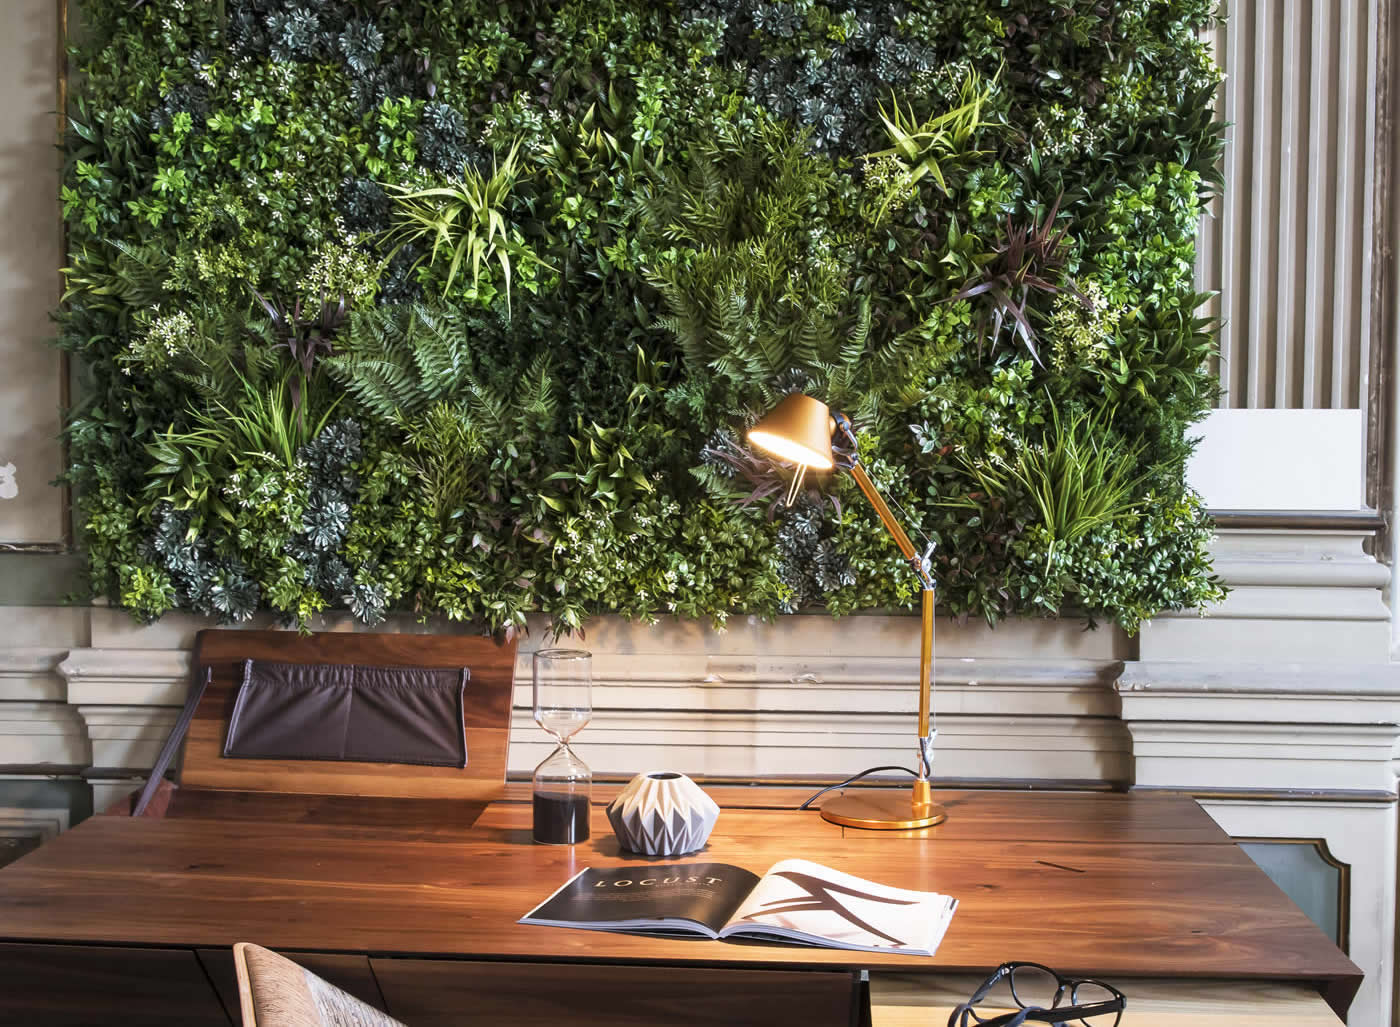 VistaFolia Green Wall Interior Design (3)